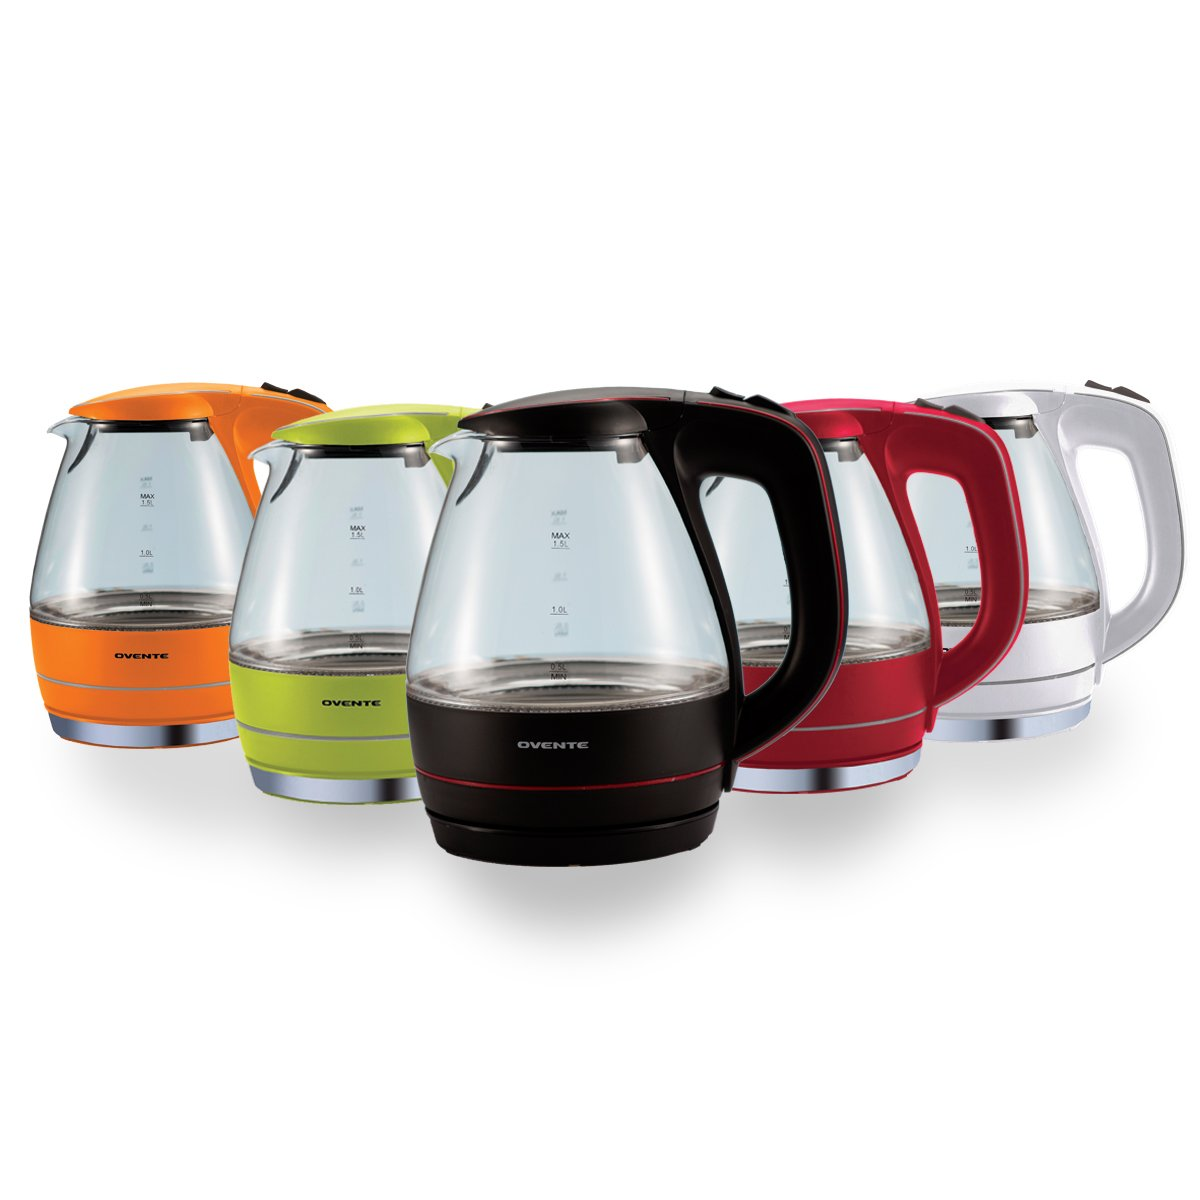 New Ovente Kg83r 1 5l Glass Electric Kettle Red Ebay